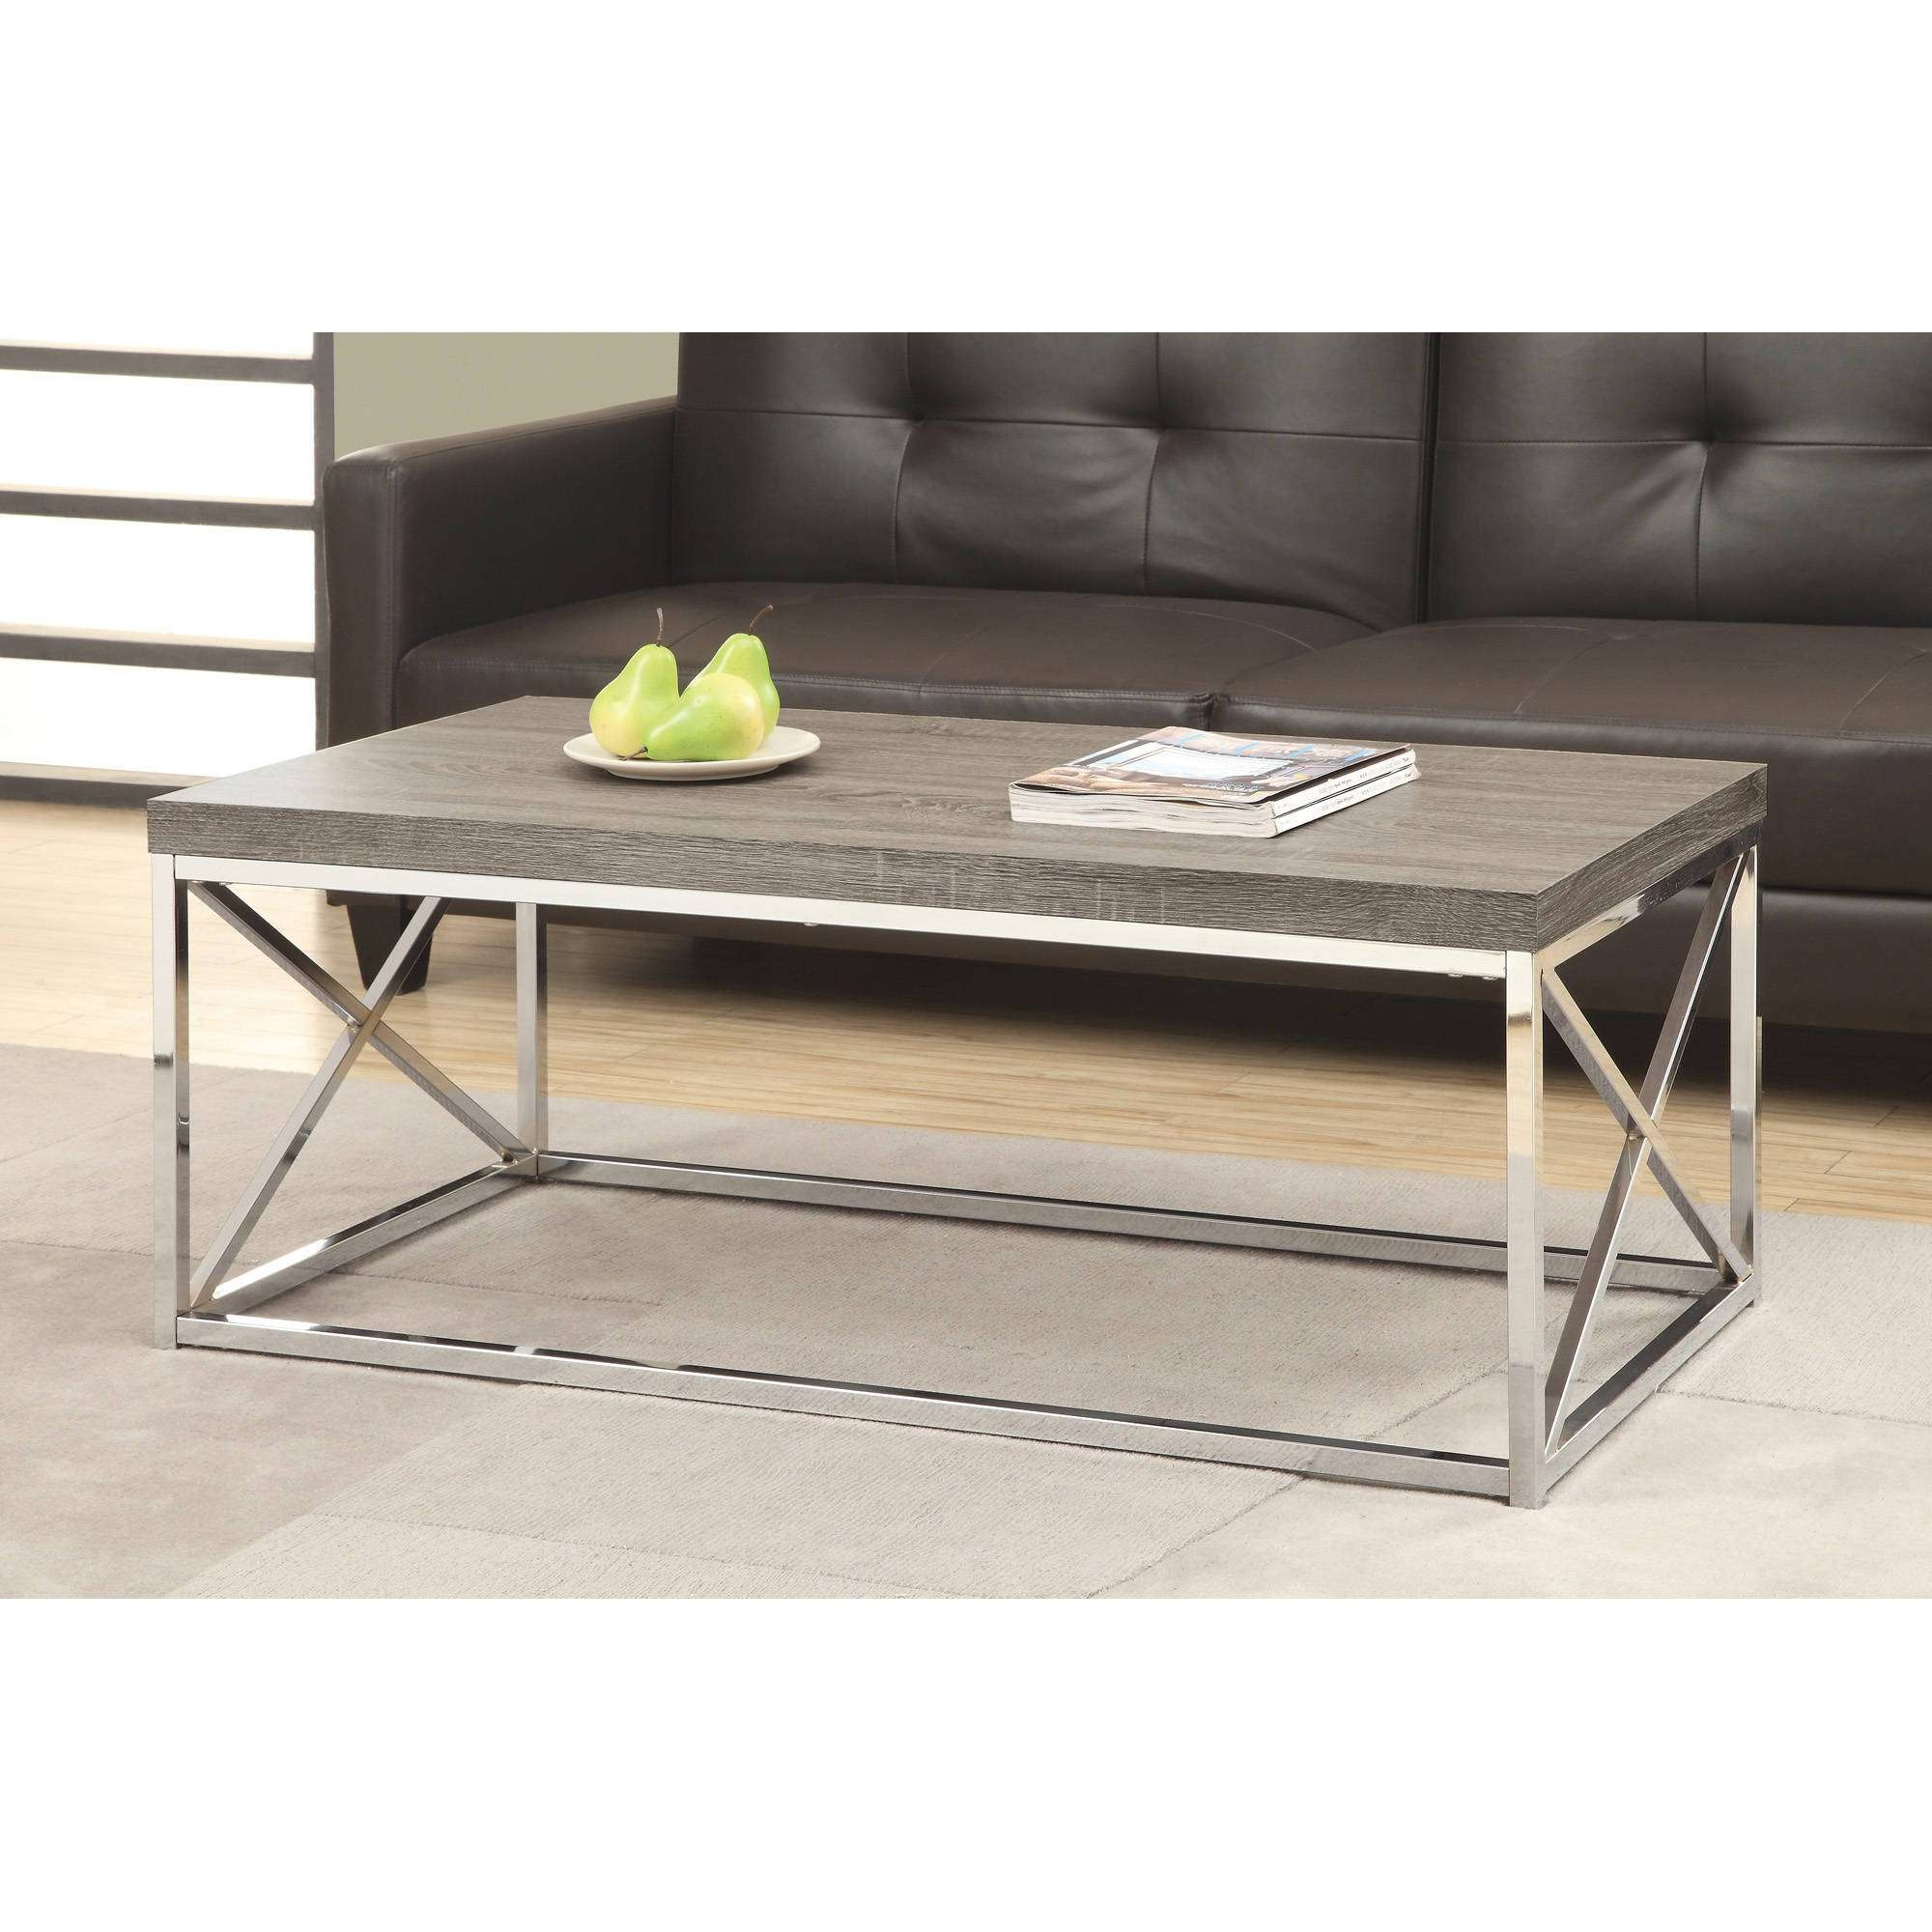 Popular Chrome Leg Coffee Tables Throughout Wood Coffee Table With Metal Legs Tags : Wonderful Black Metal (View 13 of 20)